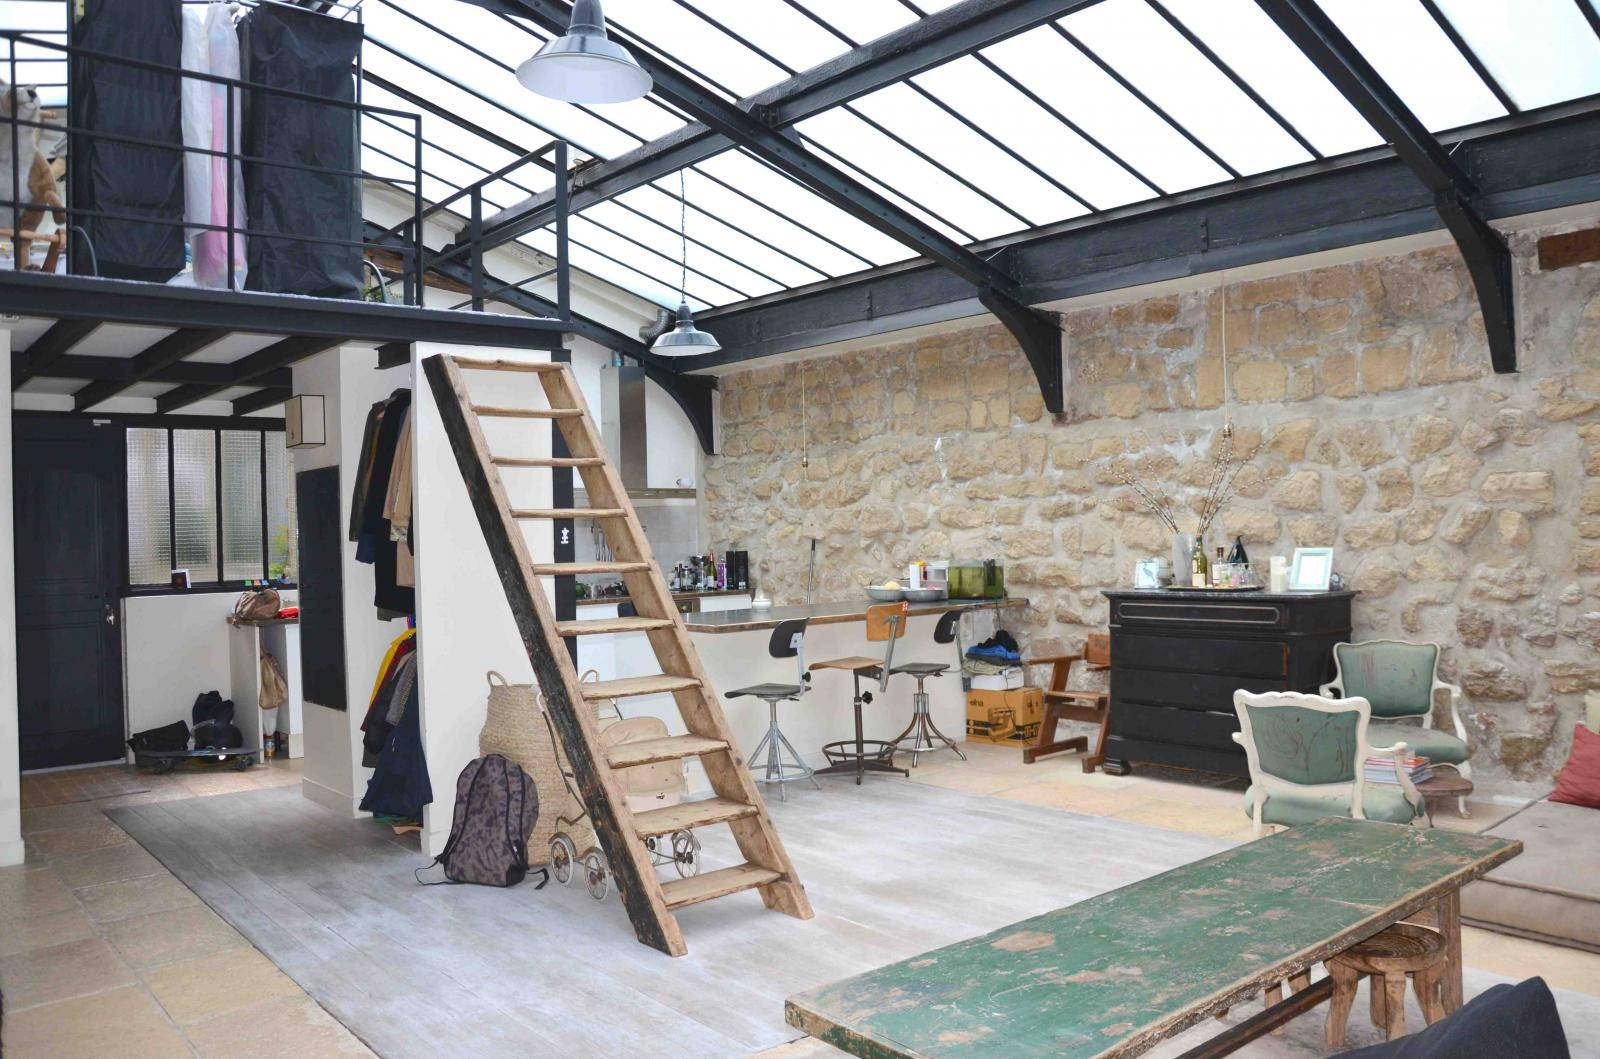 Un loft atelier paris planete deco a homes world - Fabriquer une verriere atelier ...